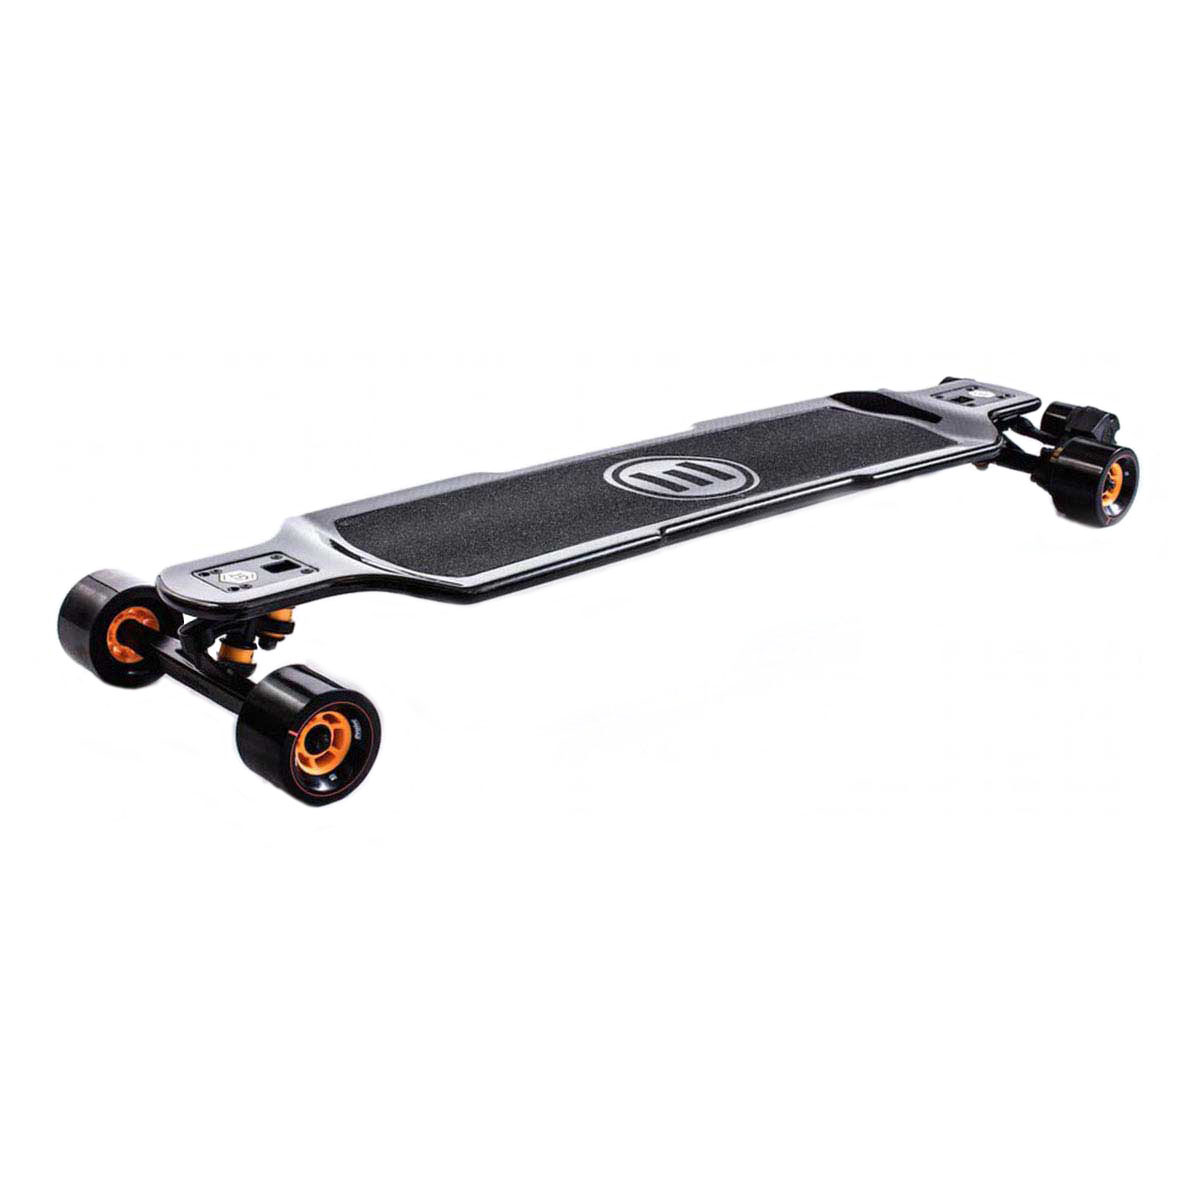 The lenght of the deck is 102 cm and the weight is 7 8e645cdc2ec81